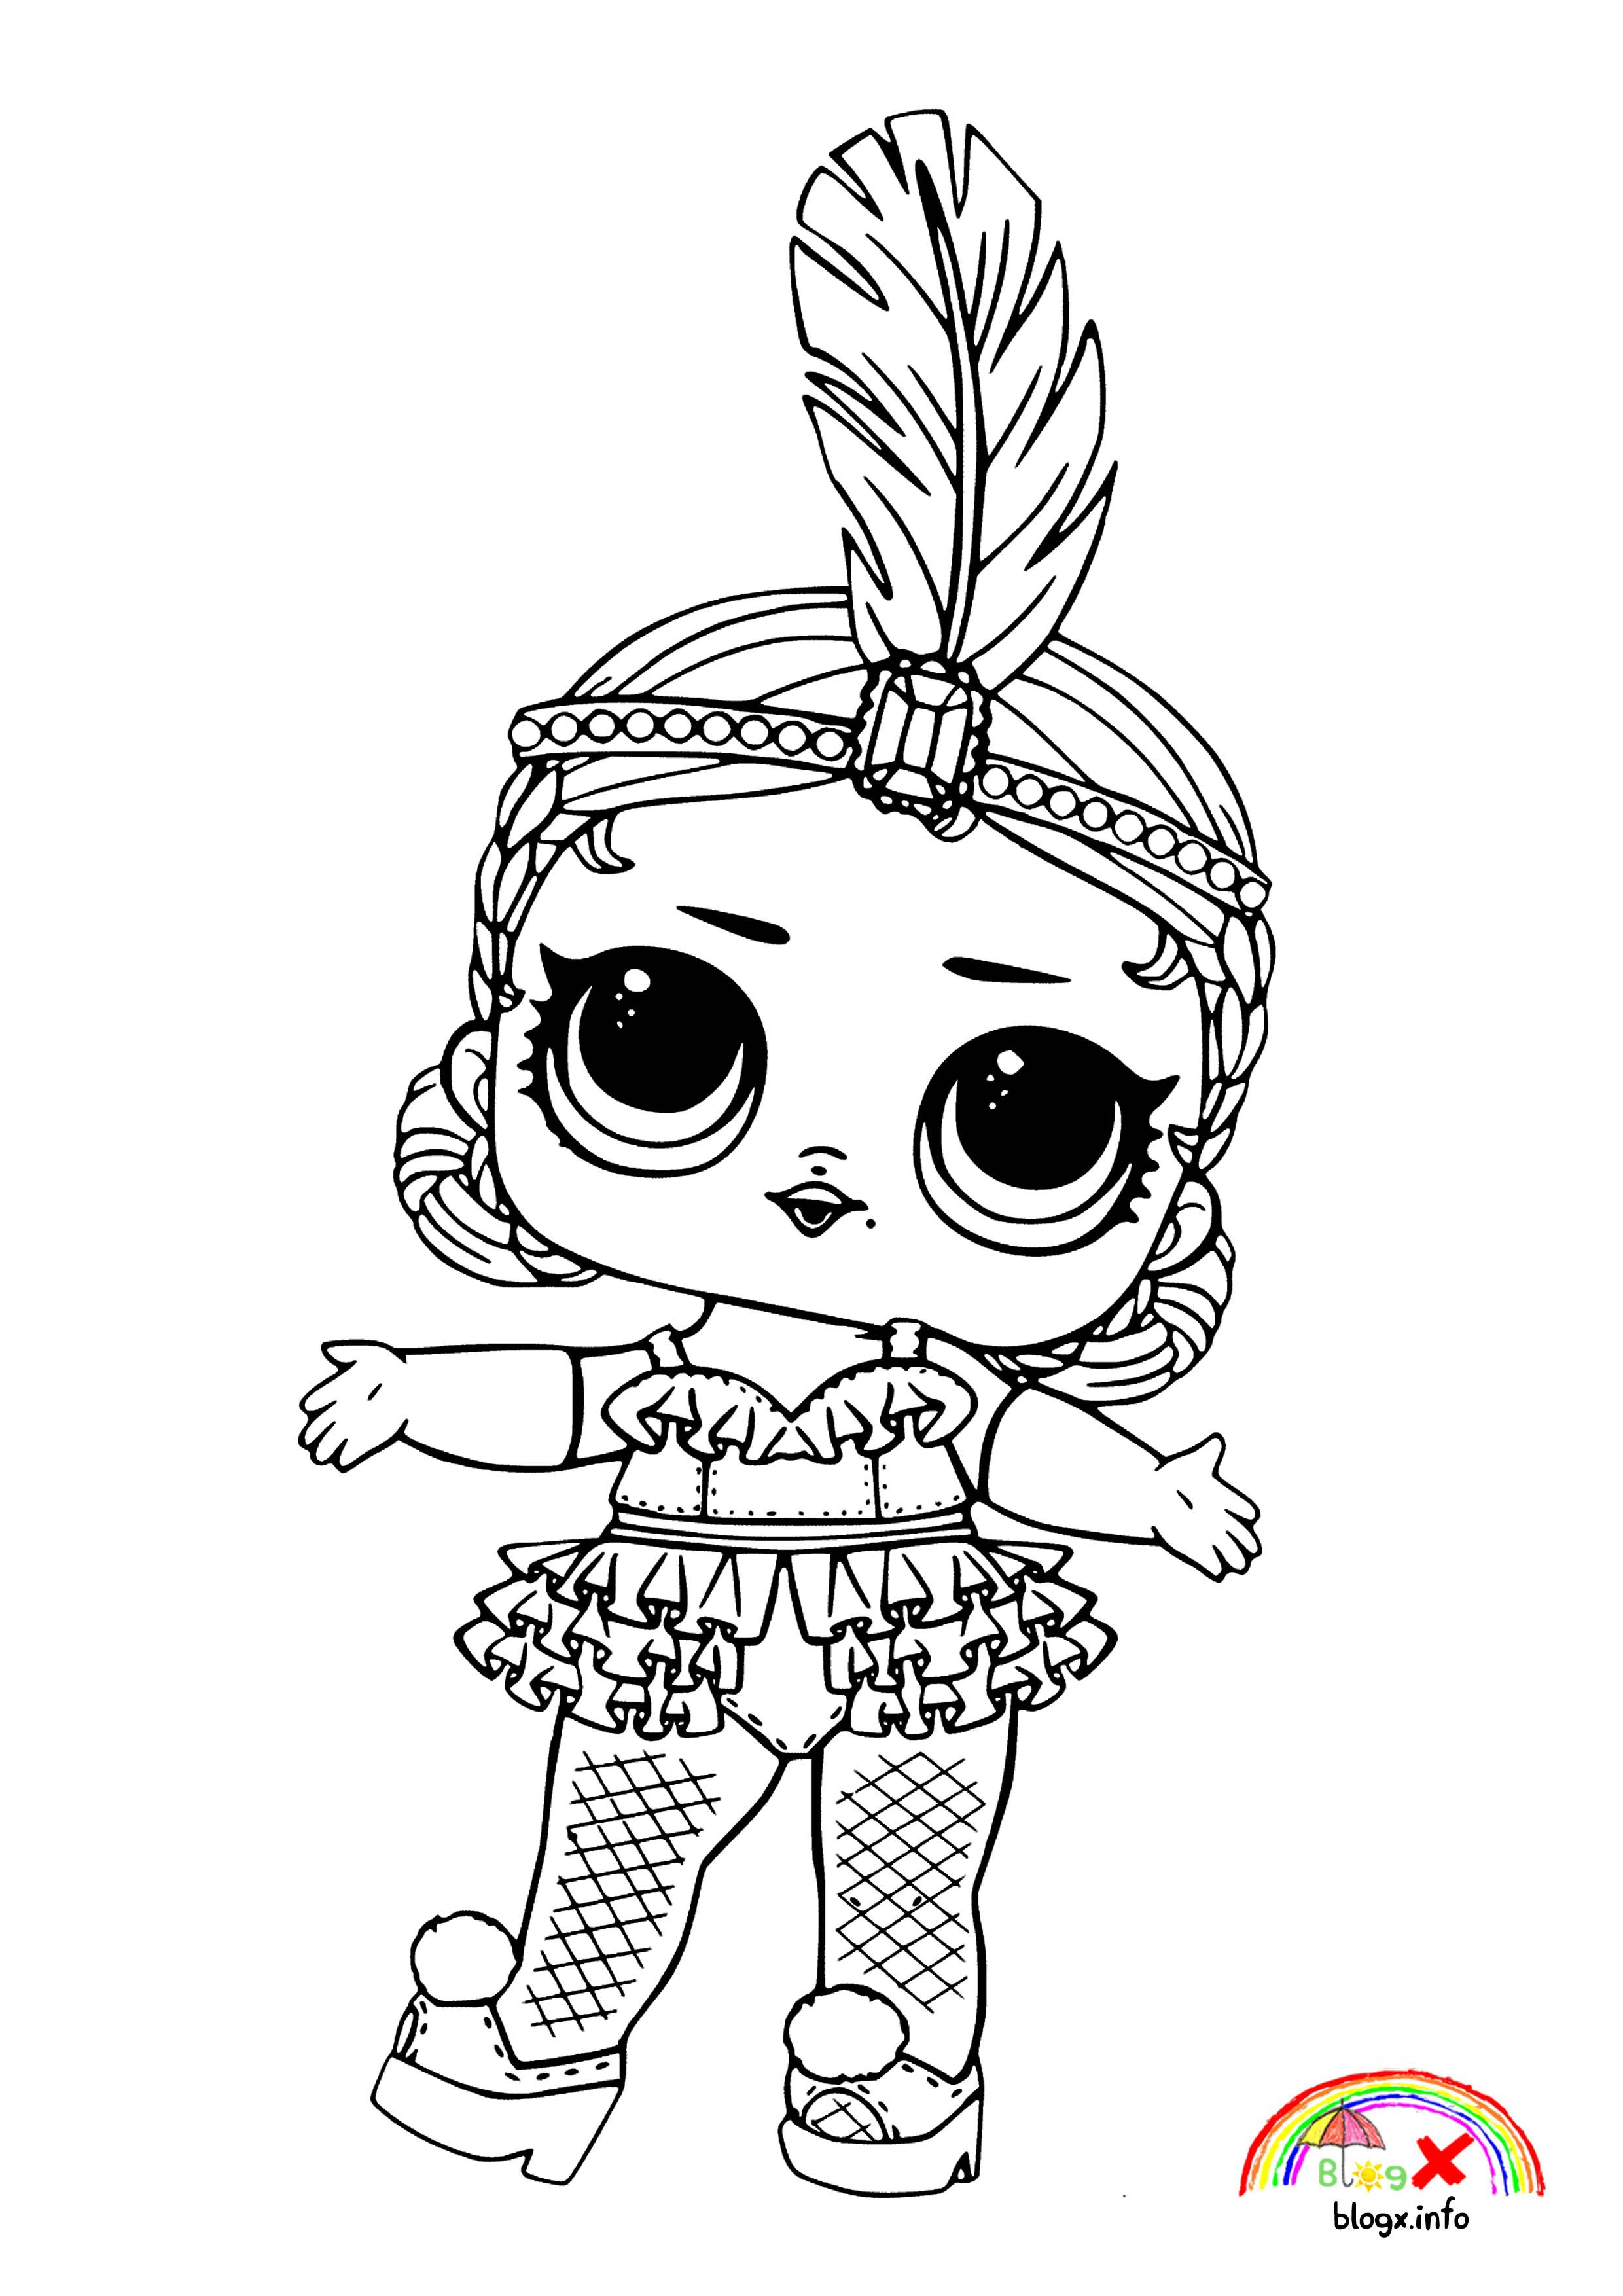 Pin On Lol Surprise Dolls Coloring Page [ 3508 x 2480 Pixel ]